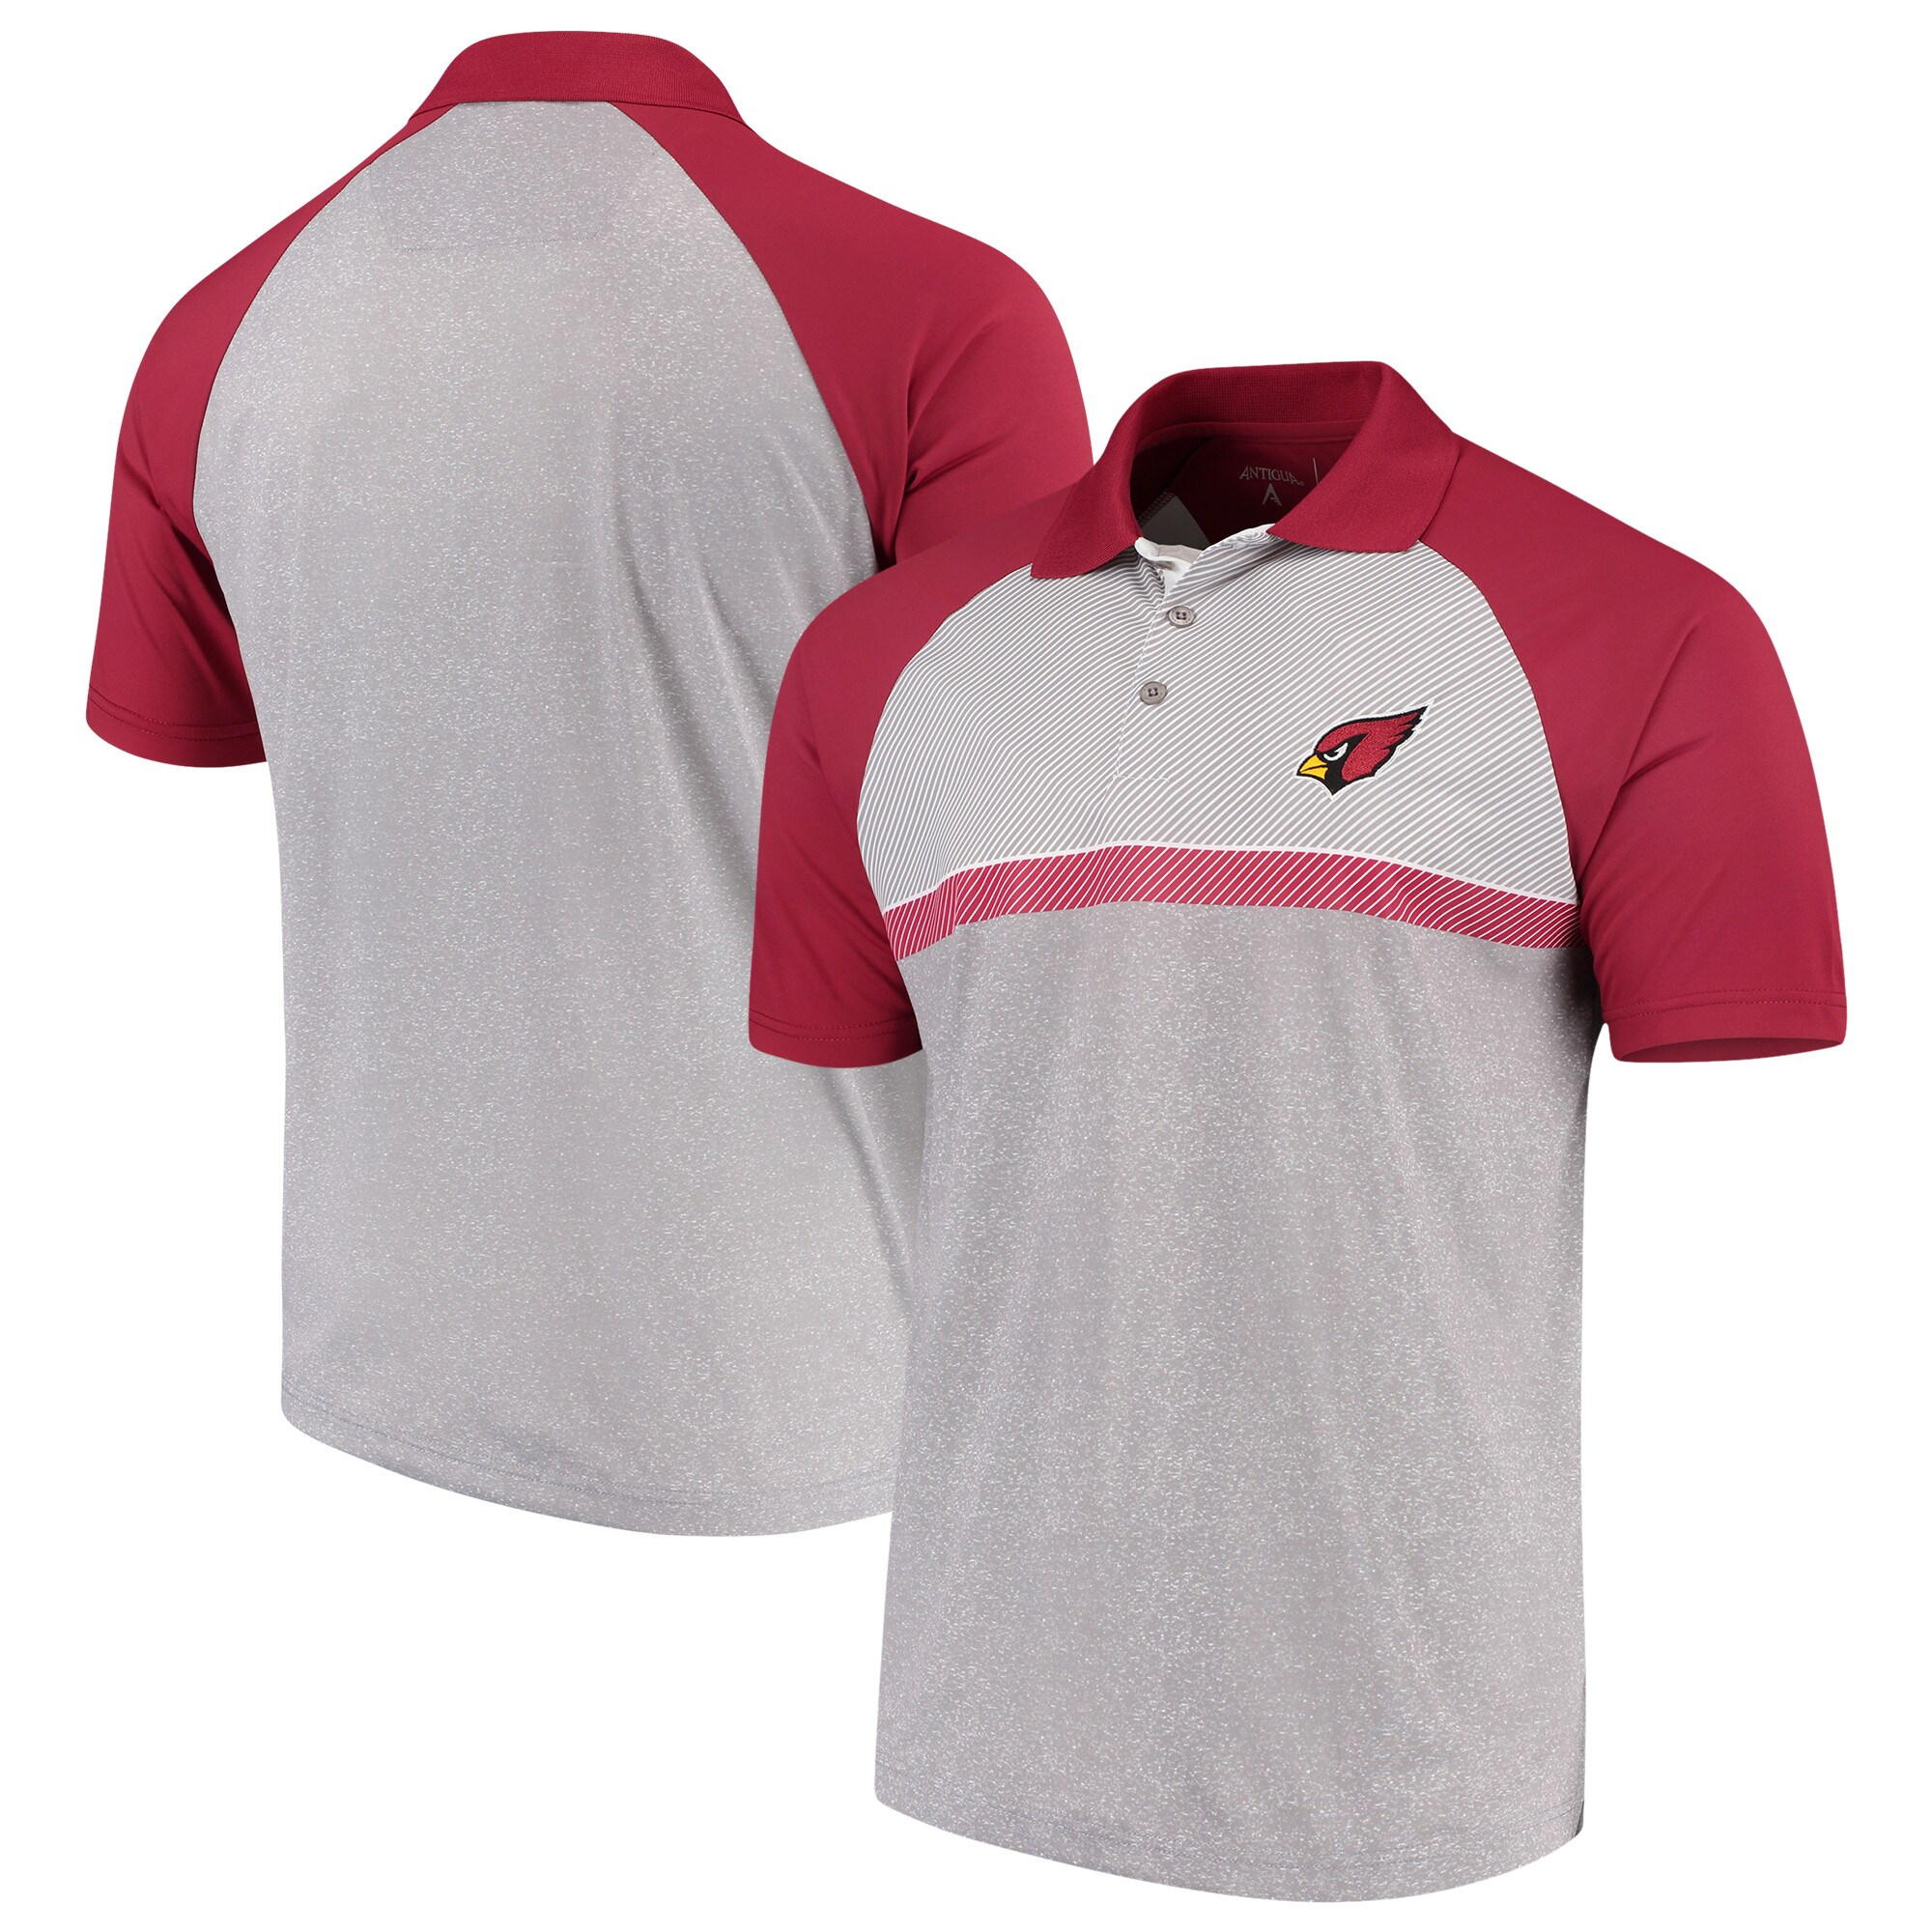 Arizona Cardinals Antigua Momentum Polo - Gray/Cardinal